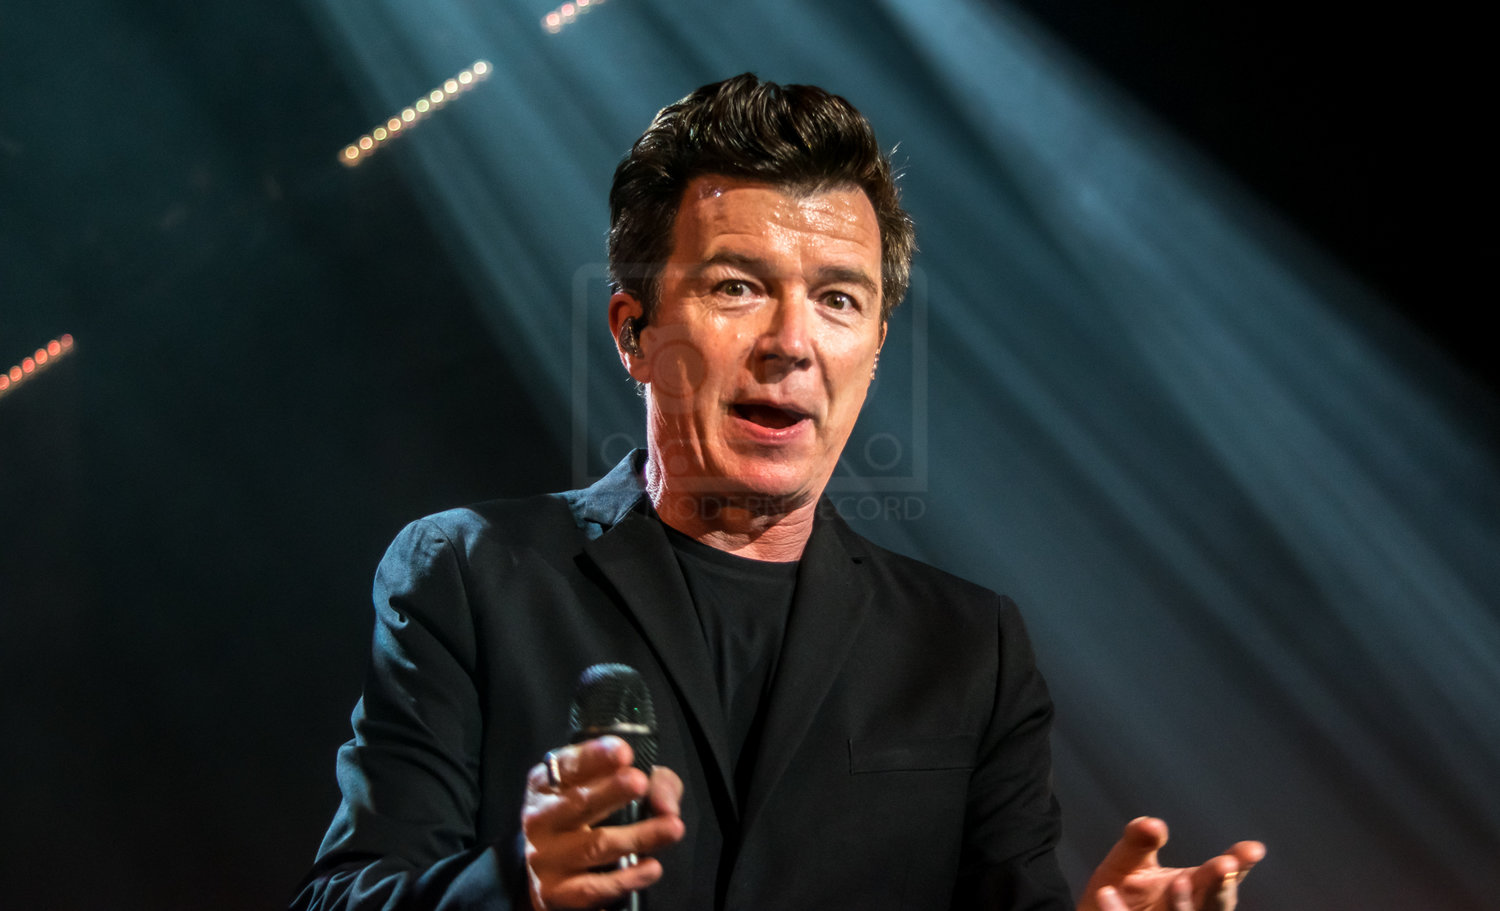 RICK ASTLEY PERFORMING AT GLASGOW'S SEC ARMADILLO - KICKING OFF HIS UK TOUR! - 25.10.2018  PICTURE BY: STEPHEN WILSON PHOTOGRAPHY